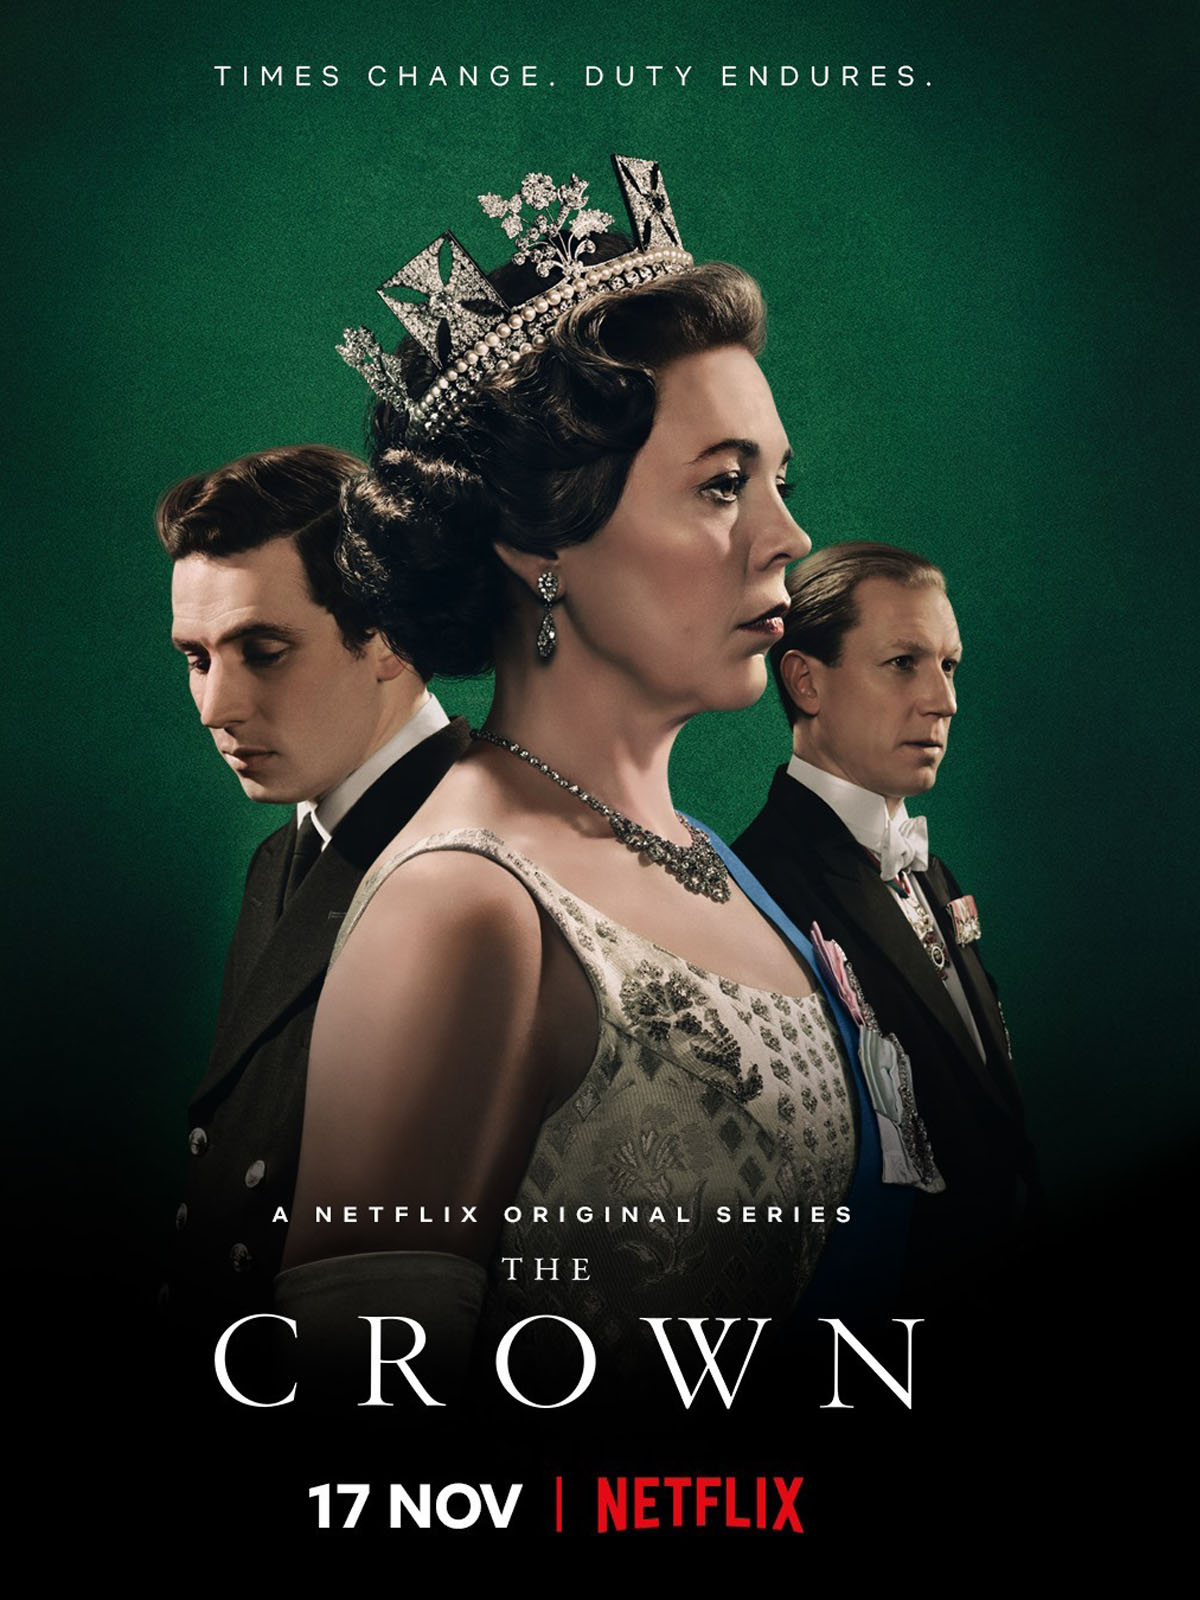 20 - The Crown